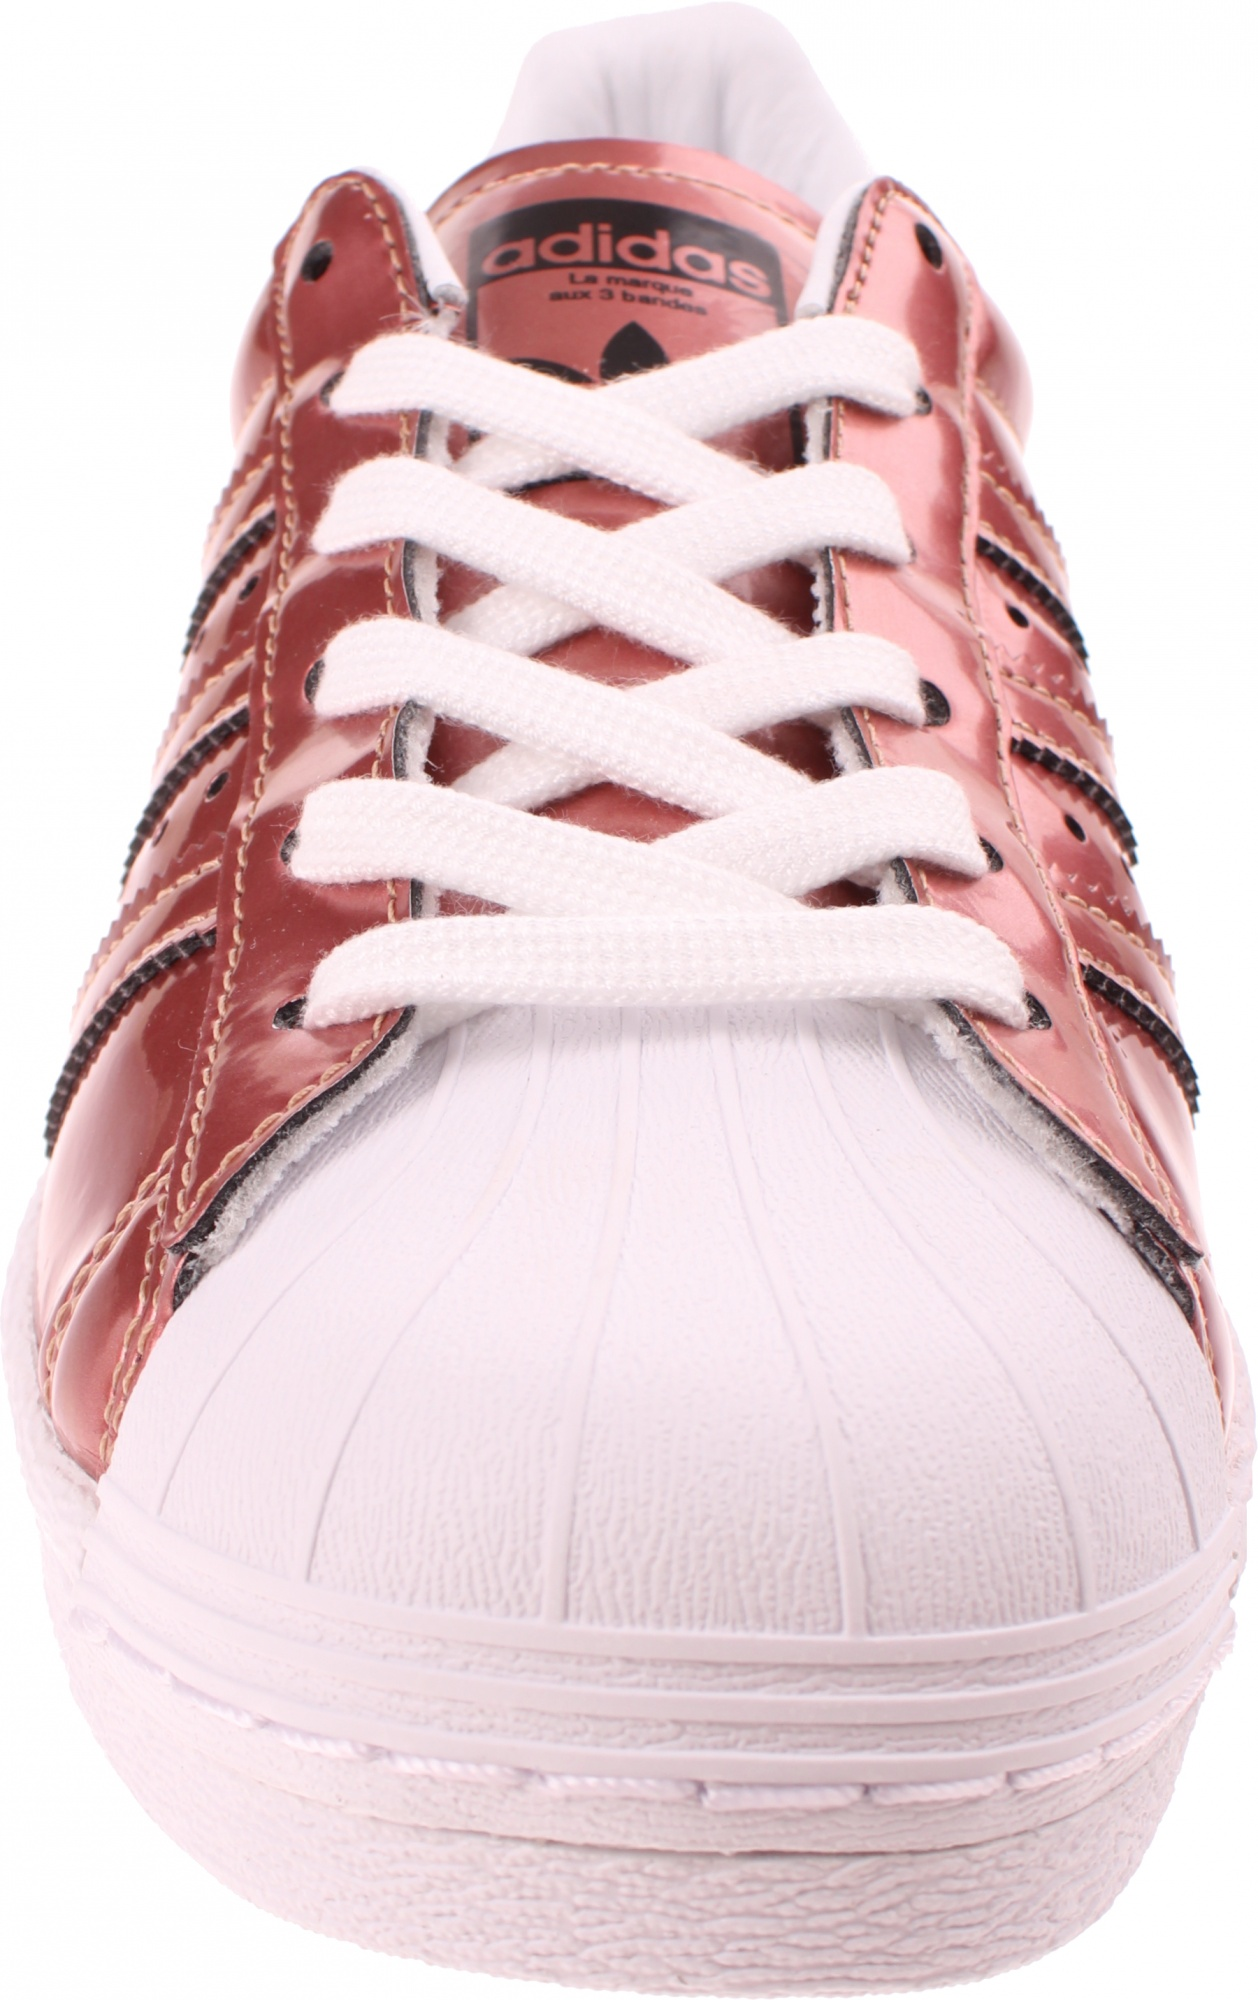 bf9011d2ffa adidas sneakers SuperStar Boost dames roze - Internet-Sport&Casuals